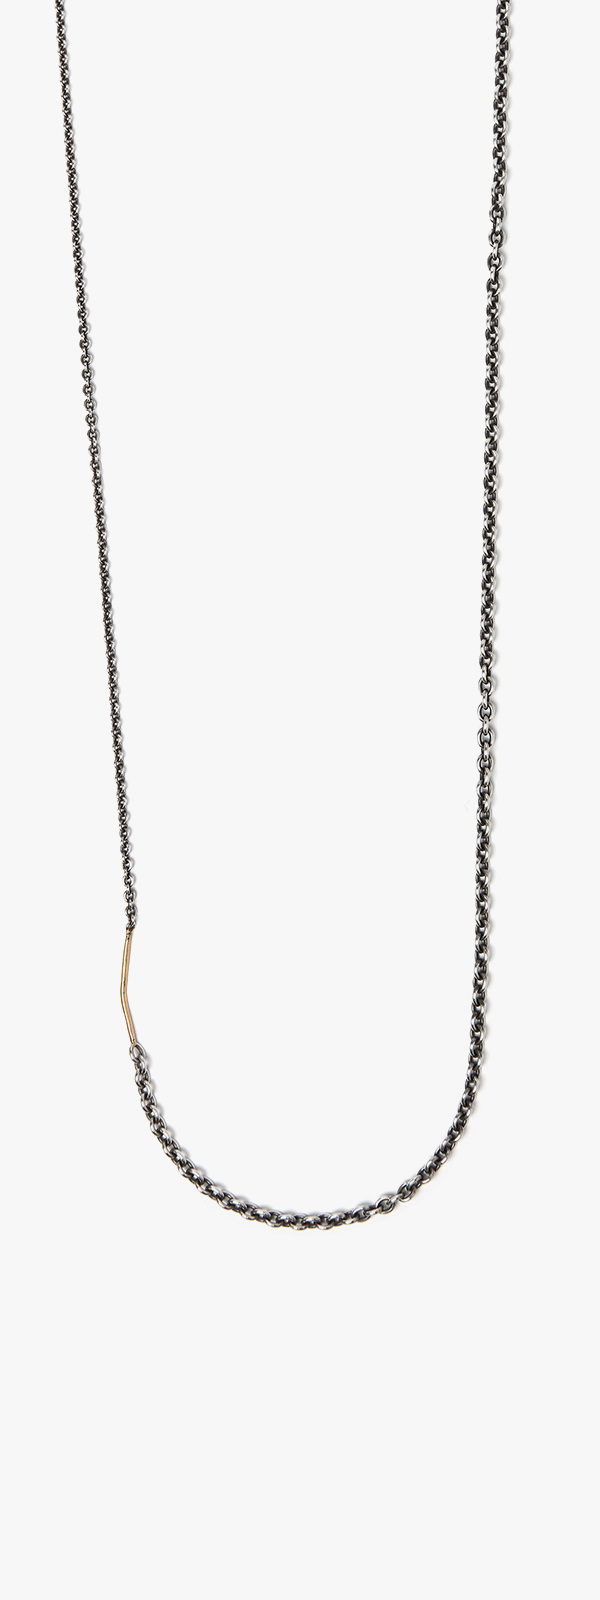 Image of Mixed Metal Necklace 092